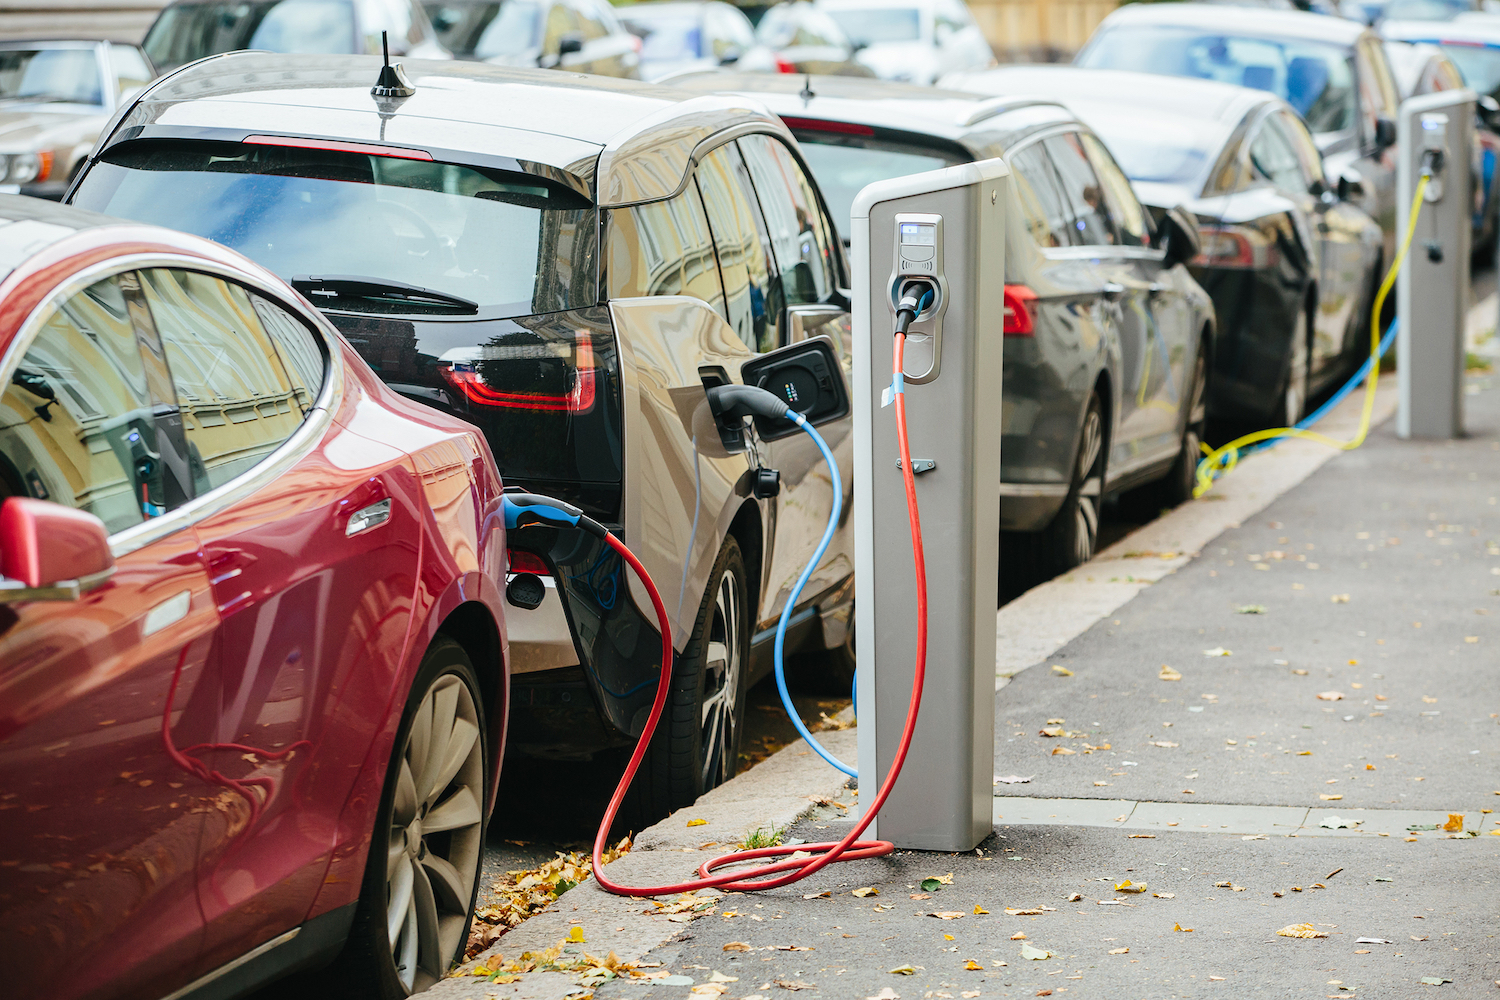 A new report from Next 10 has revealed that California can easily reach its target of having 1.5 million electric cars on the road by 2025.